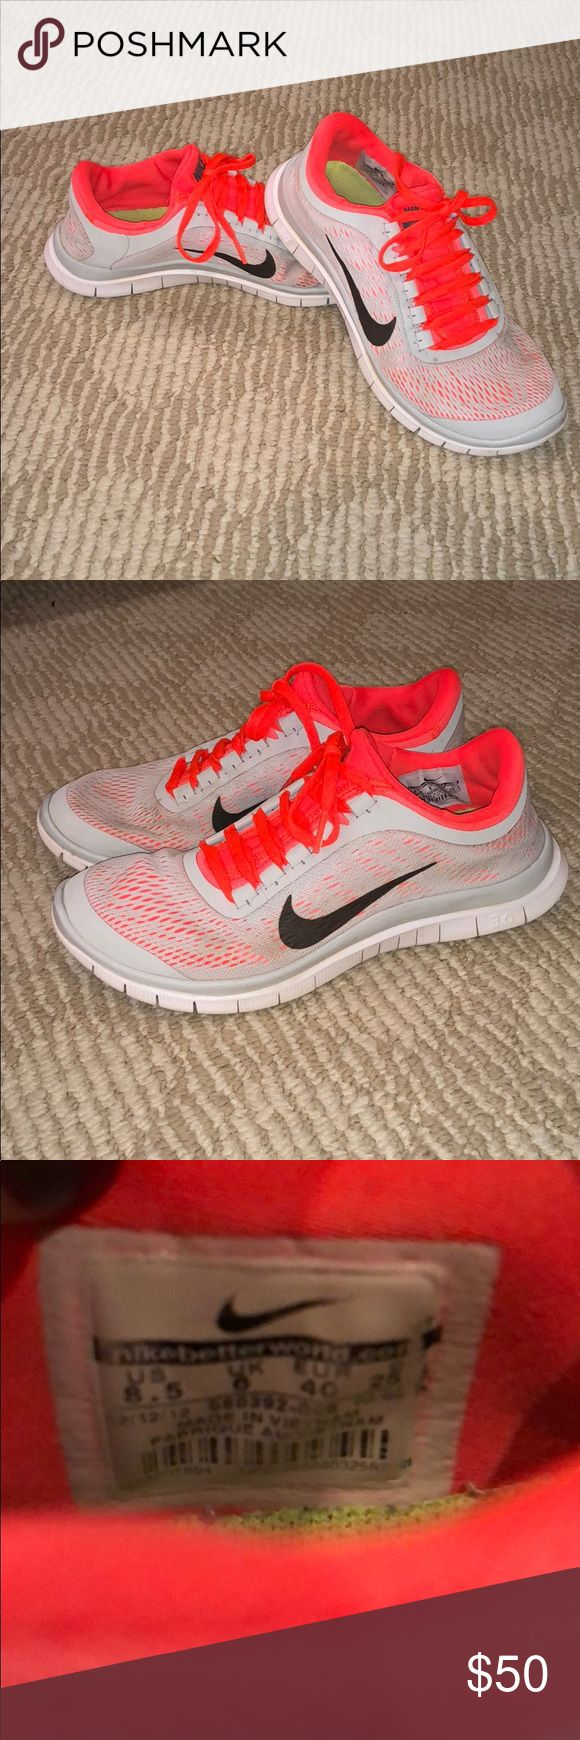 Nike free 3.0 orange and light grey Nike 3.0 free. Vibrant color, great condition! Nike Shoes Sneakers